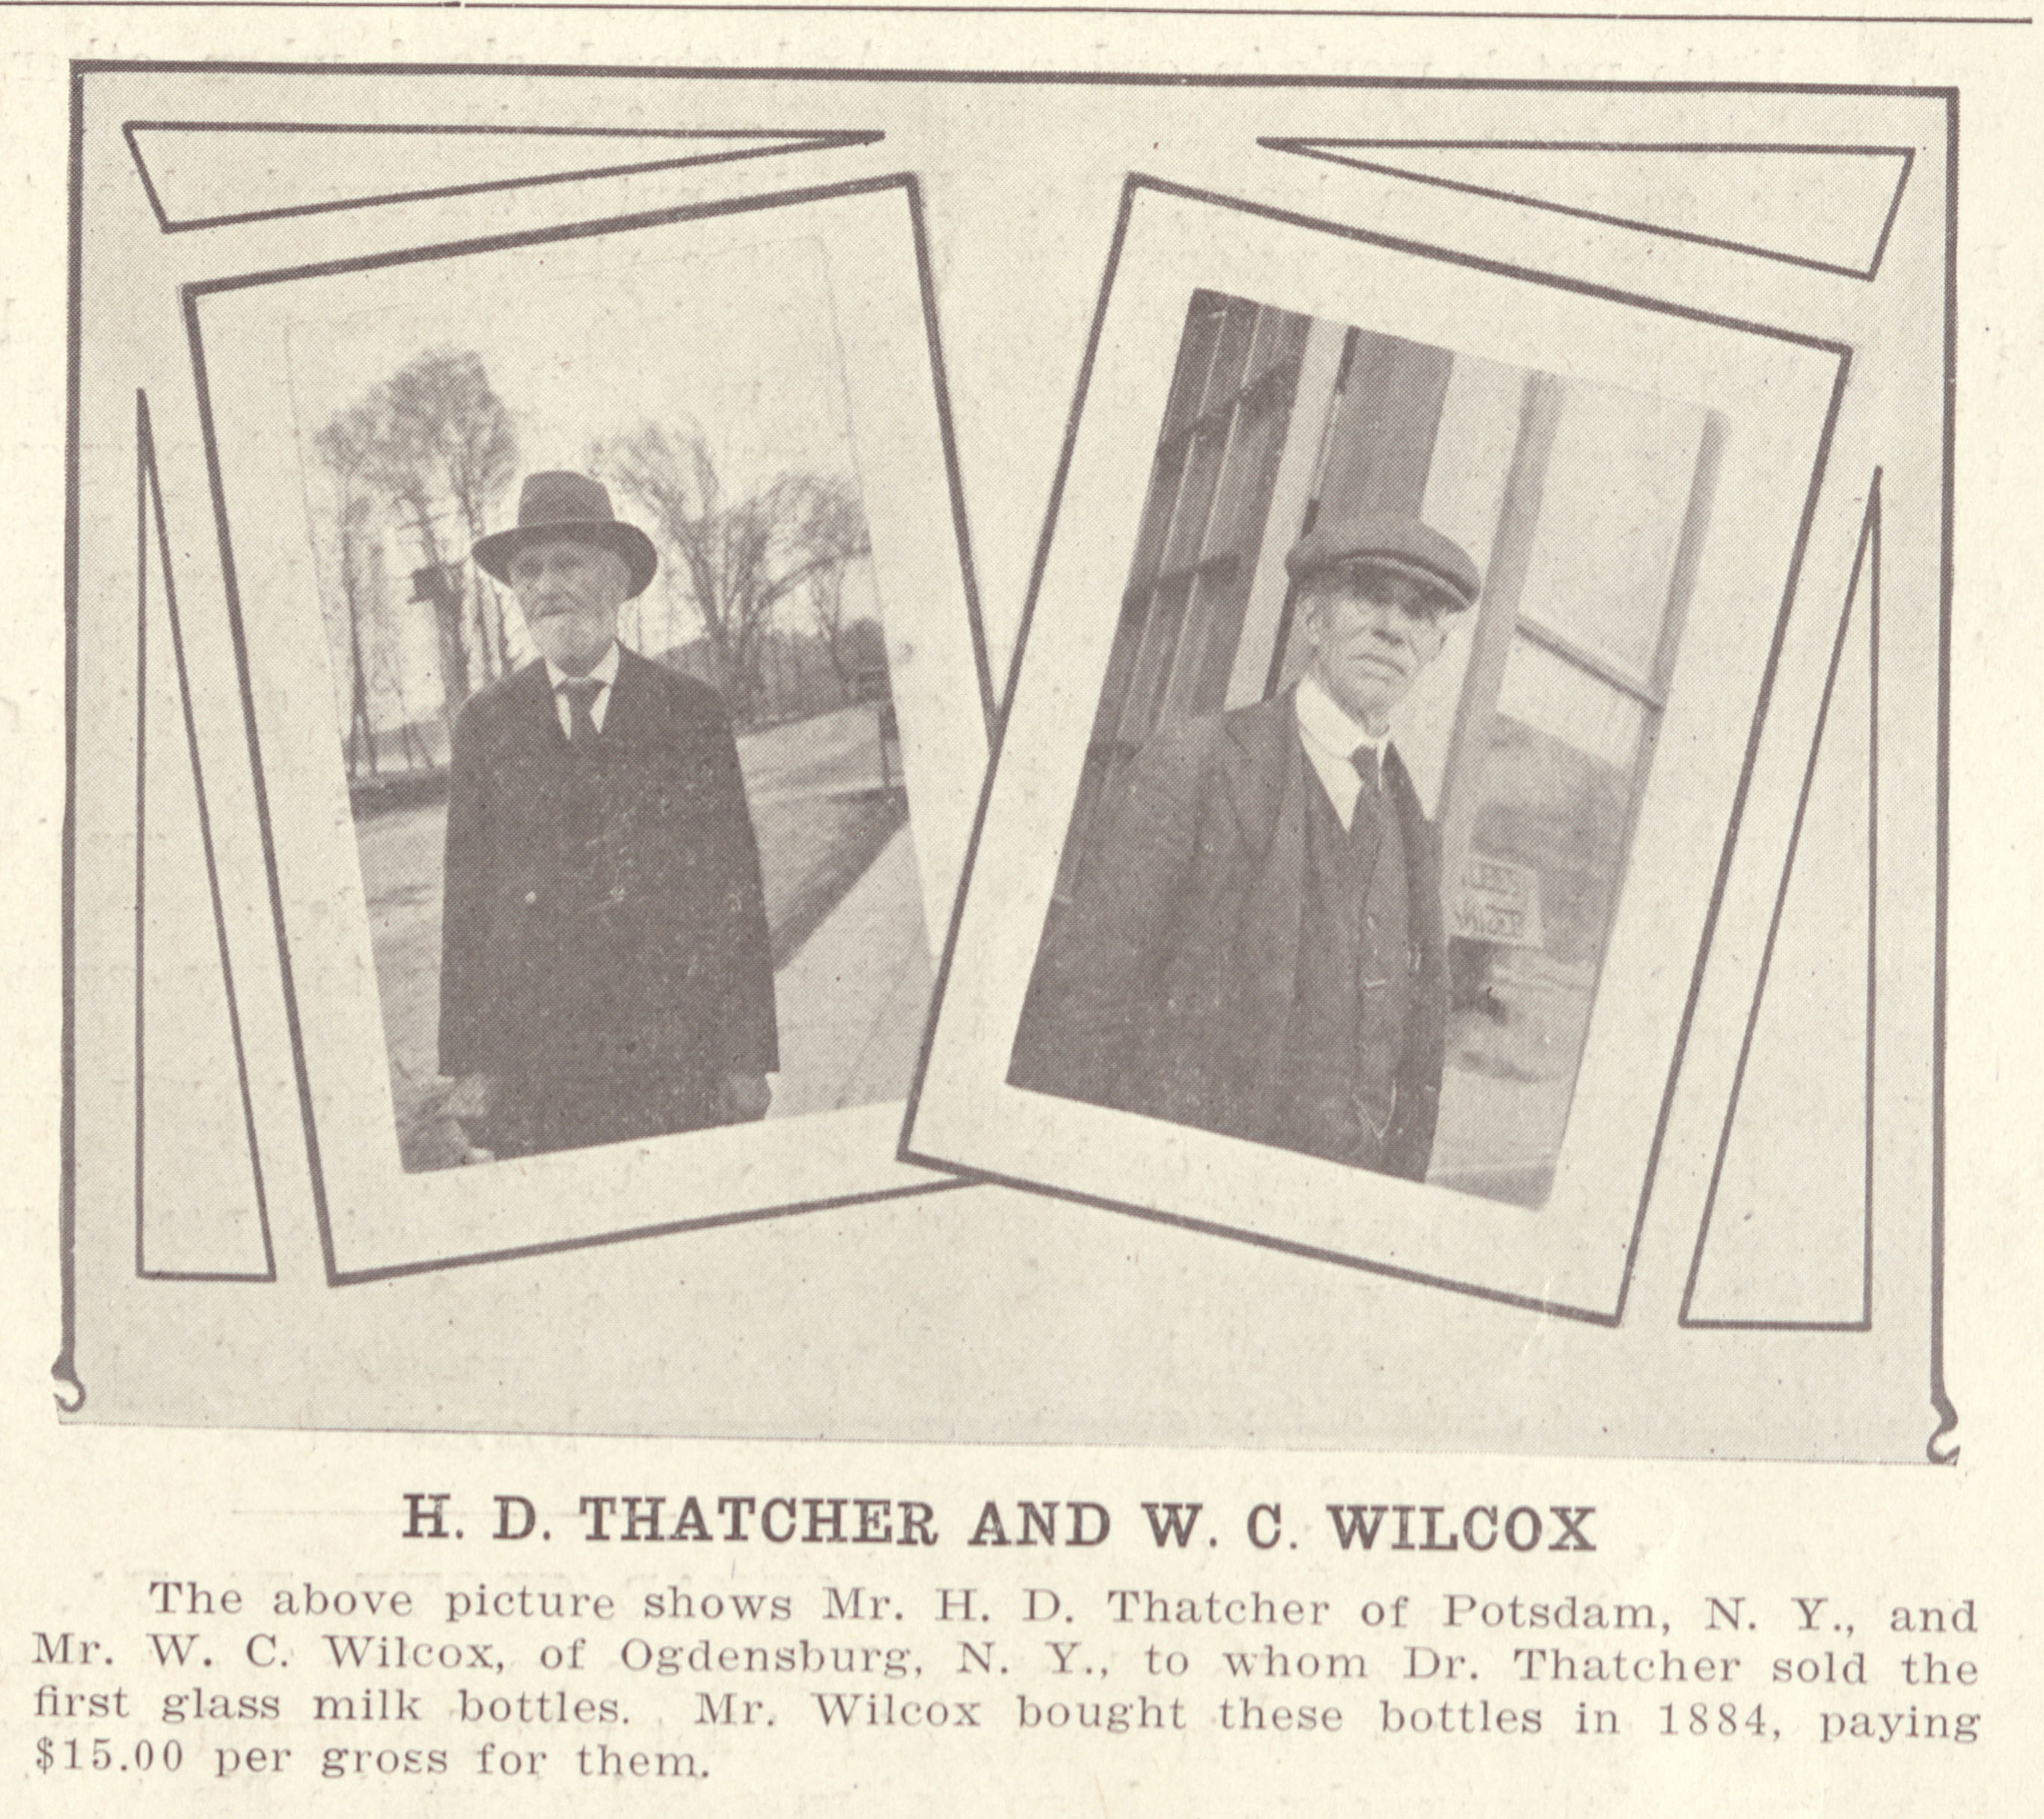 Photographs of Dr. Thatcher and his first customer, W.C. Wilcox